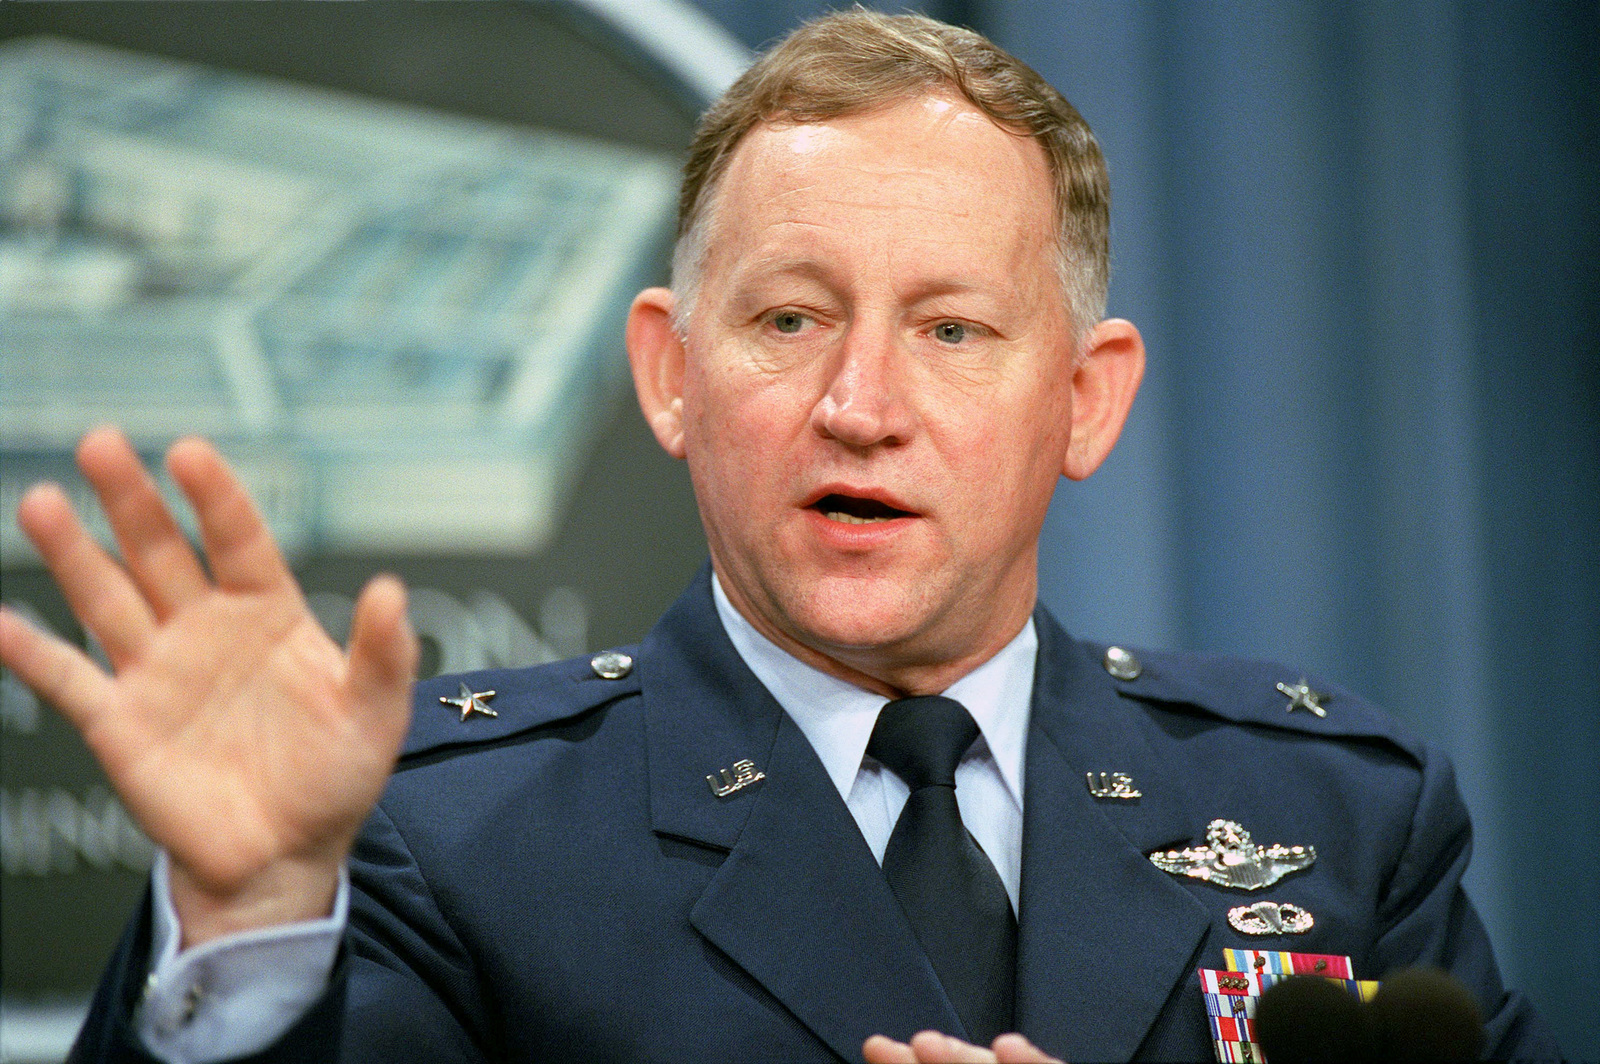 US Air Force (USAF) Brigadier General (BGEN) James Smith, Commander, US Forces Command Joint War Fighting Center, conducts a Pentagon press briefing on Millennium Challenge 2002. Millennium Challenge 2002 is a three-week training exercise/experiment to test the effectiveness of a number of transformational technologies, involving hardware, software and conceptual doctrines, which have been developed over the past two years